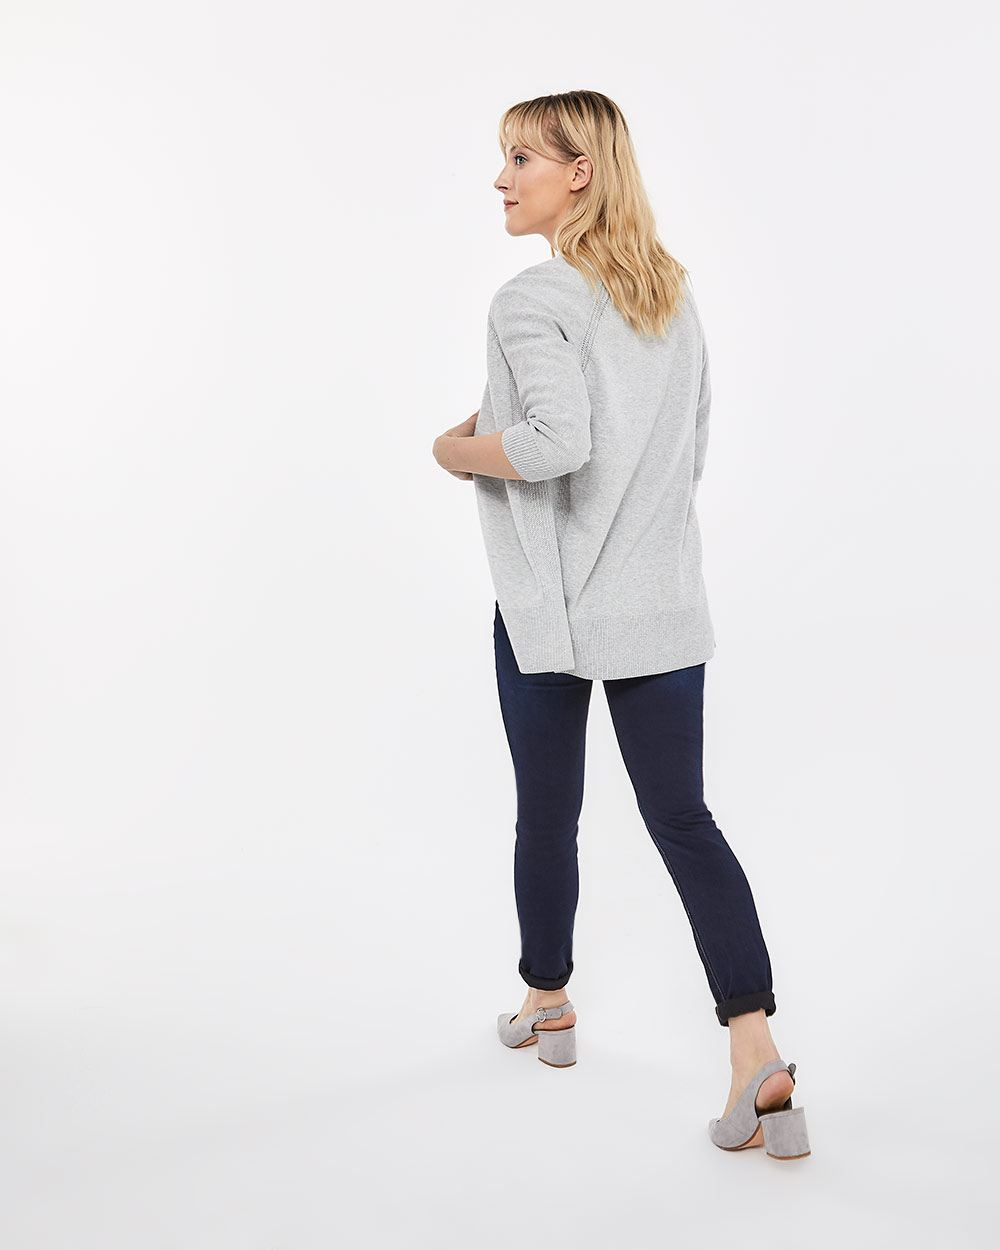 Cotton Open Cardigan - Petite